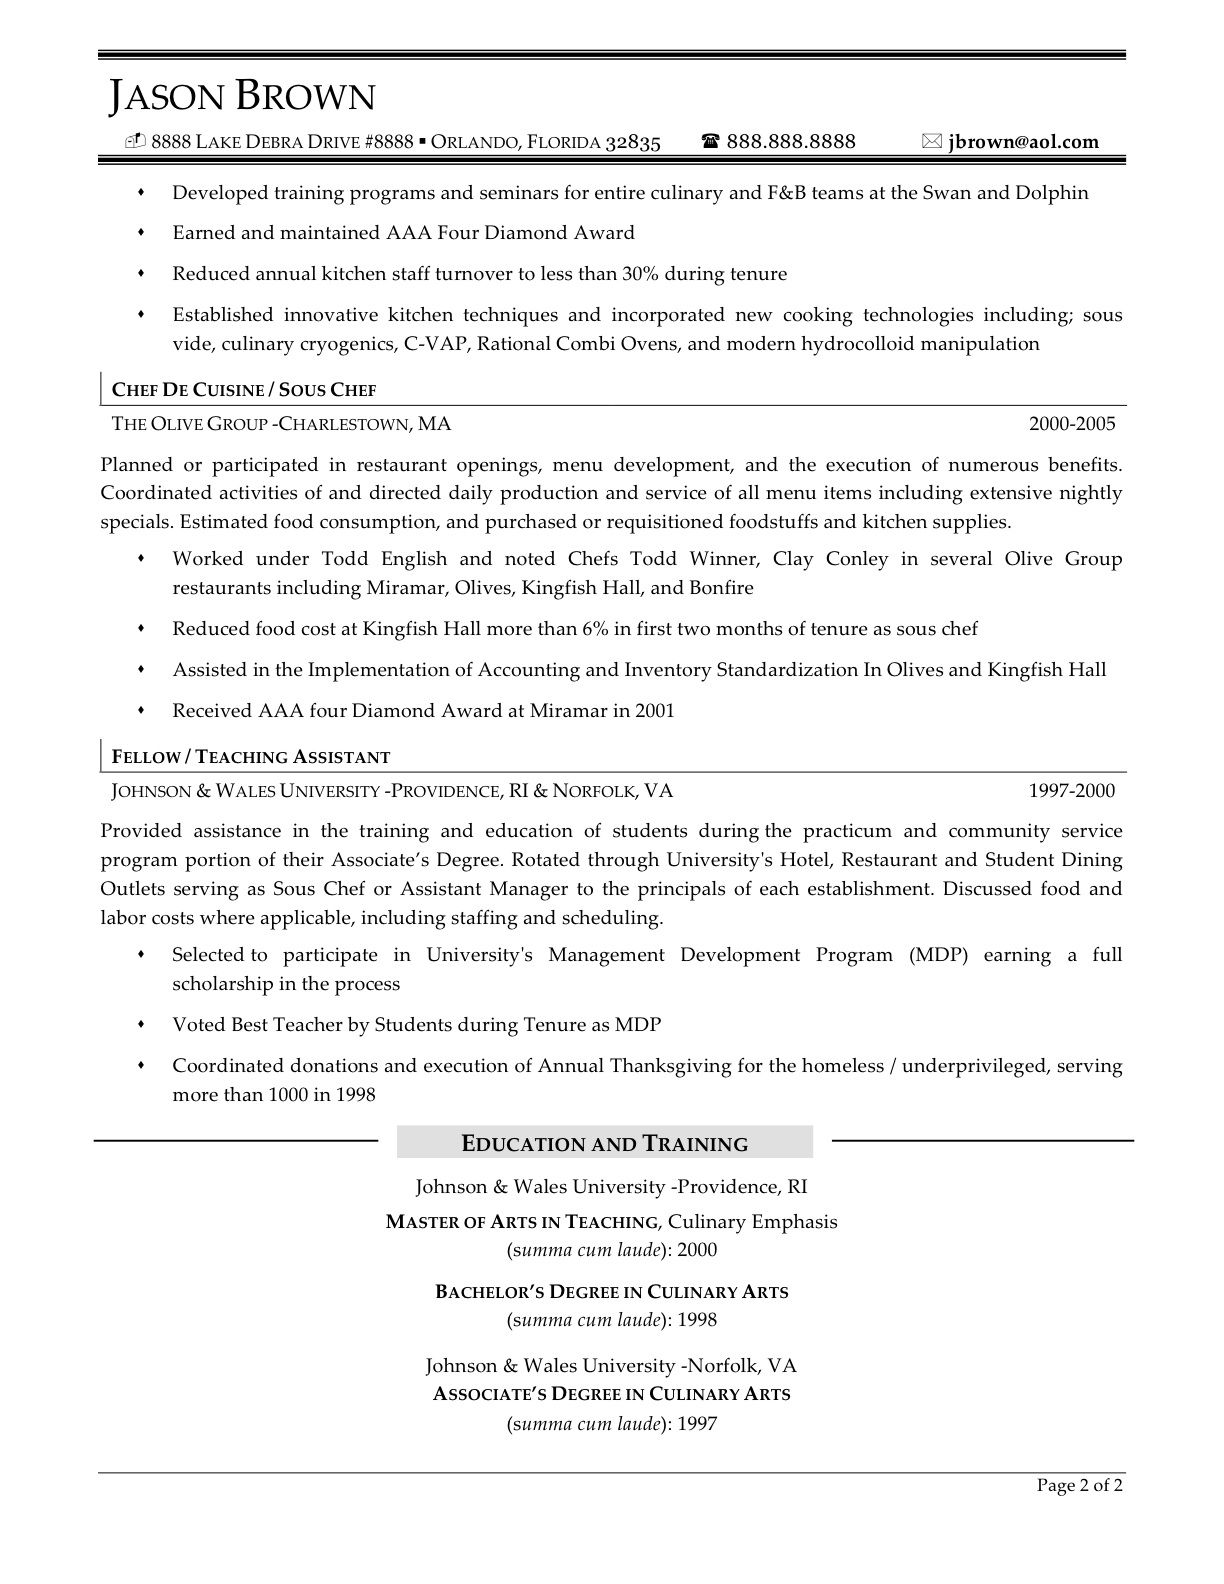 chef cook resume examples  httpwwwjobresumewebsitechefcook  also chef cook resume examples  httpwwwjobresumewebsitechef